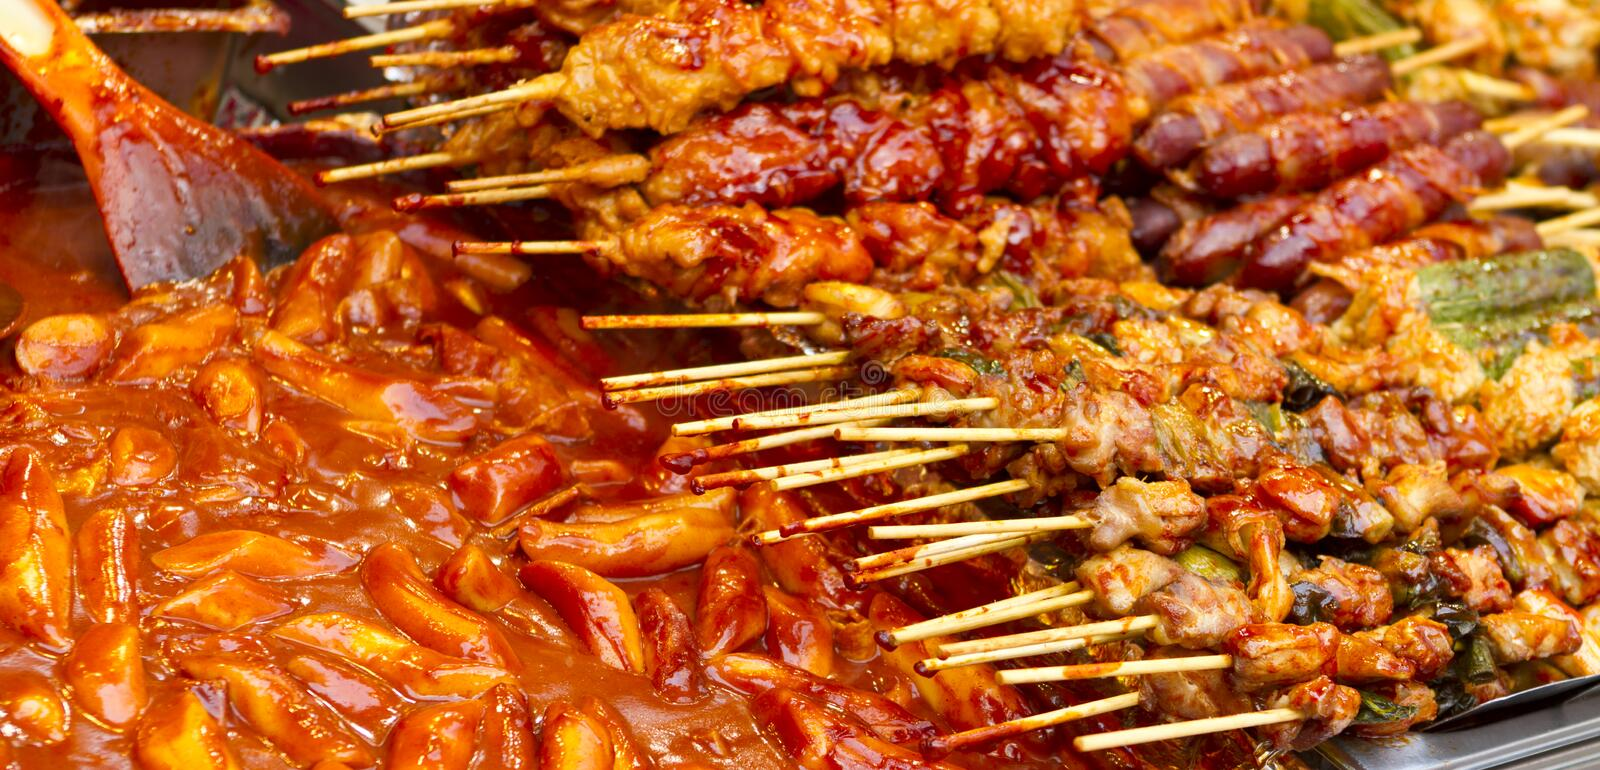 A spicy fast food. Simply found at local Korean martket, Soul Korea stock image